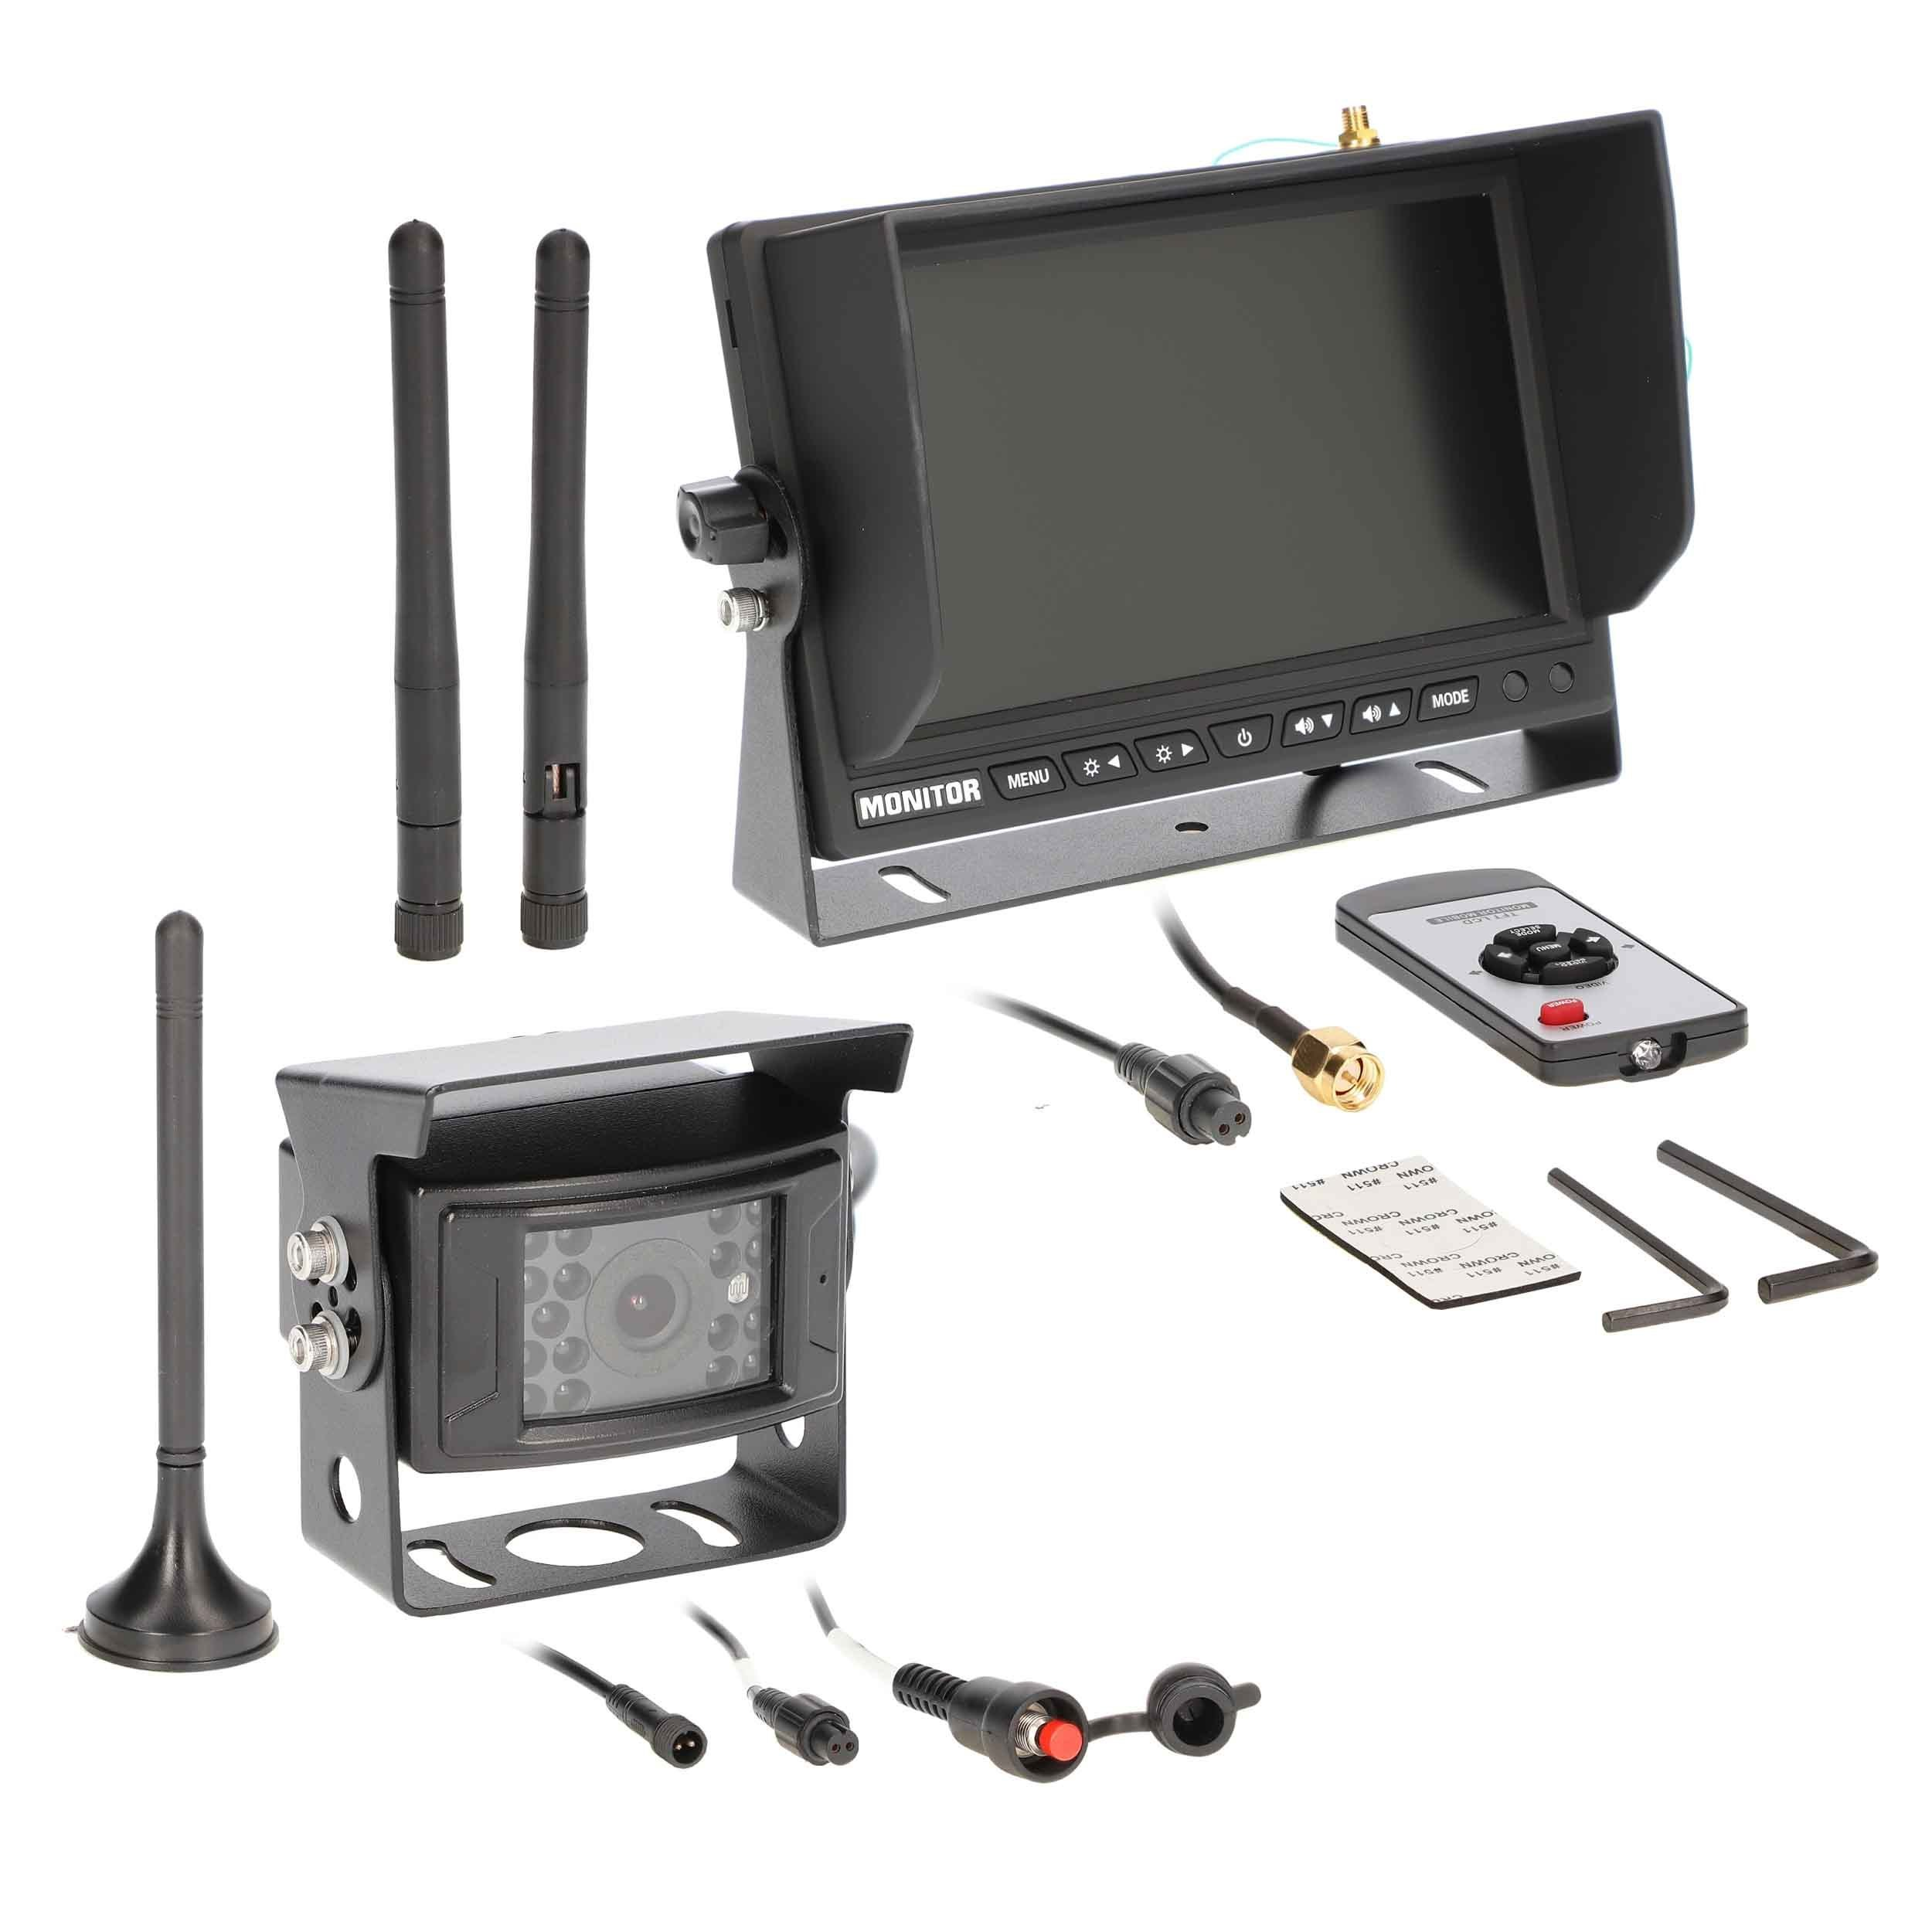 7 Inch Wireless Monitor with Wireless Camera